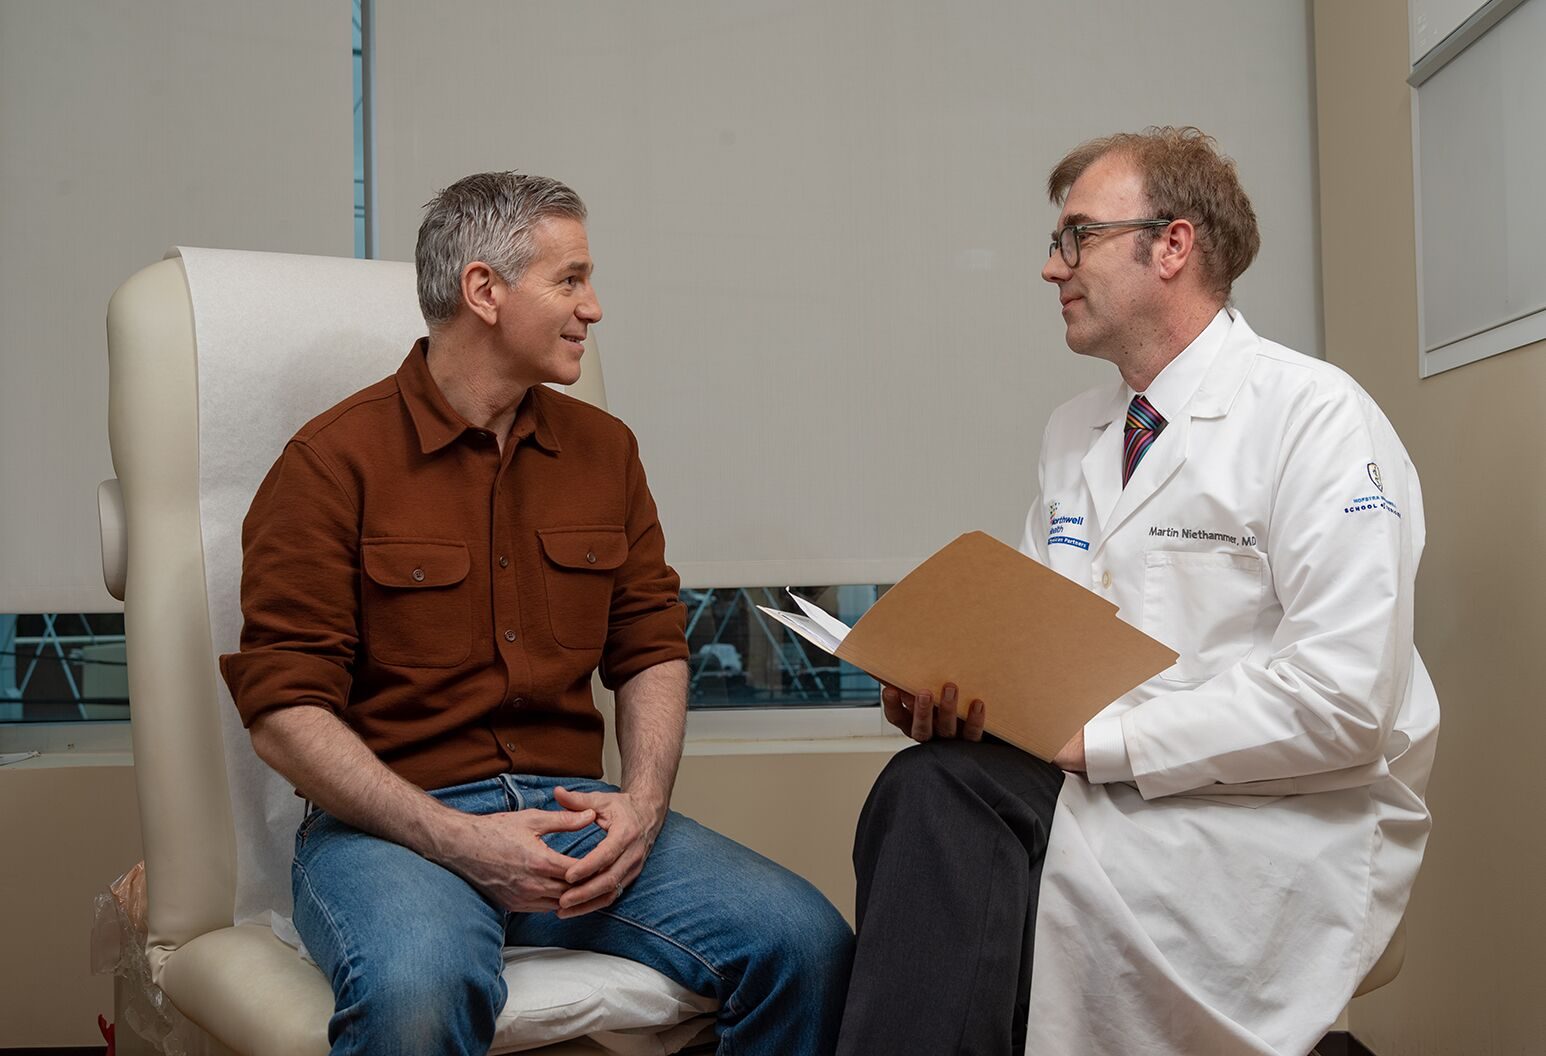 Martin Niethammer, MD, PhD, with a patient suffering from essential tremor